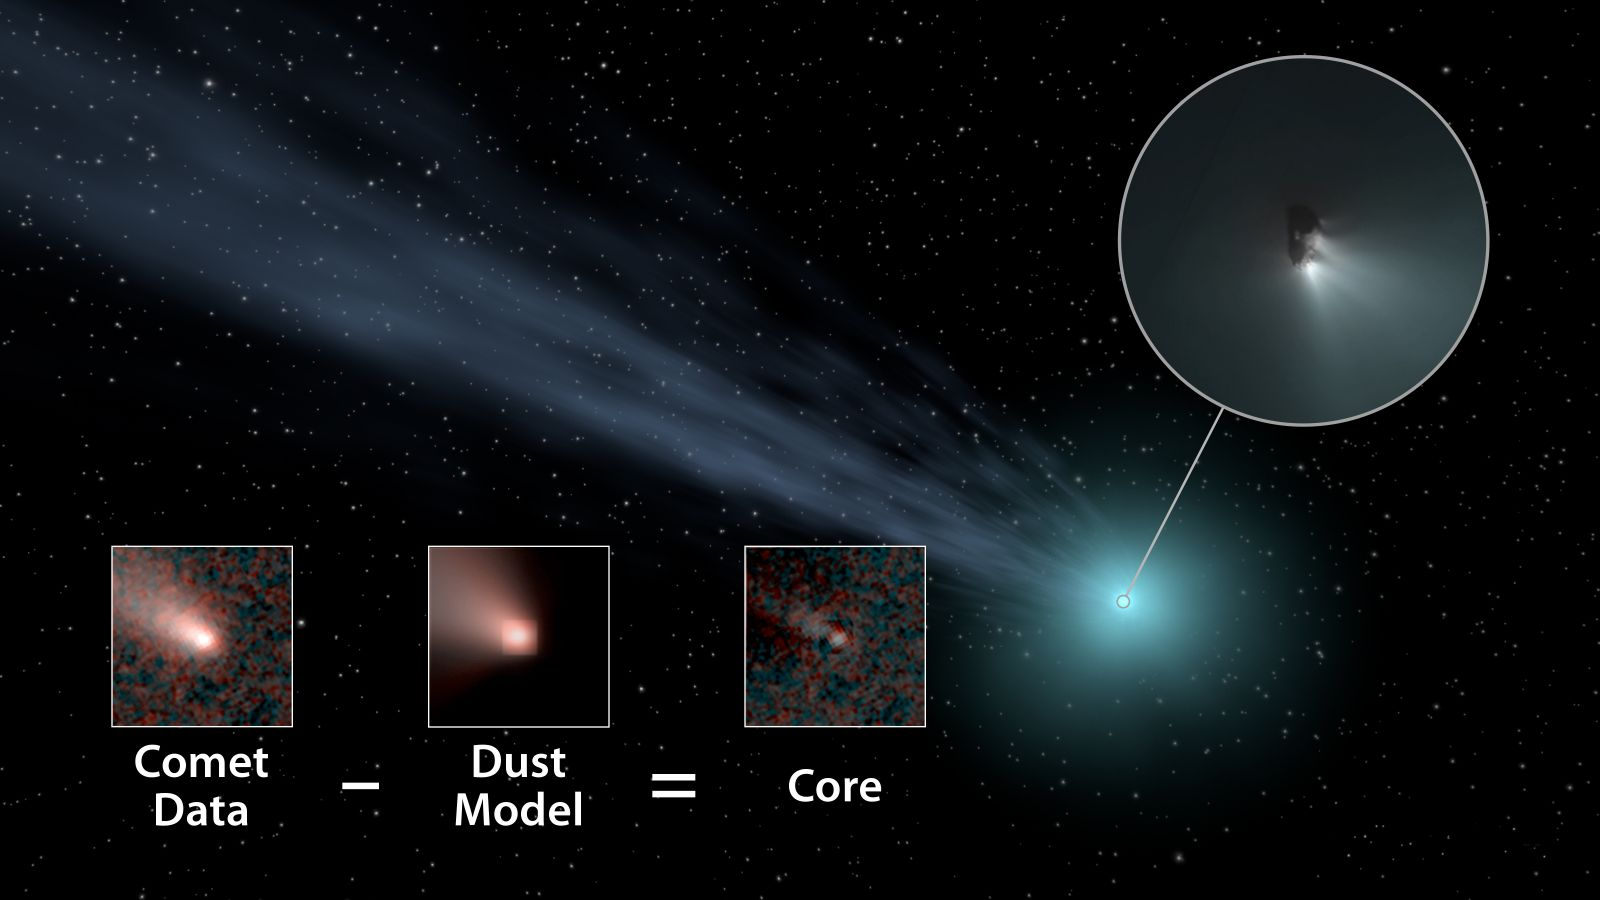 Large, distant comets more common than previously thought ...